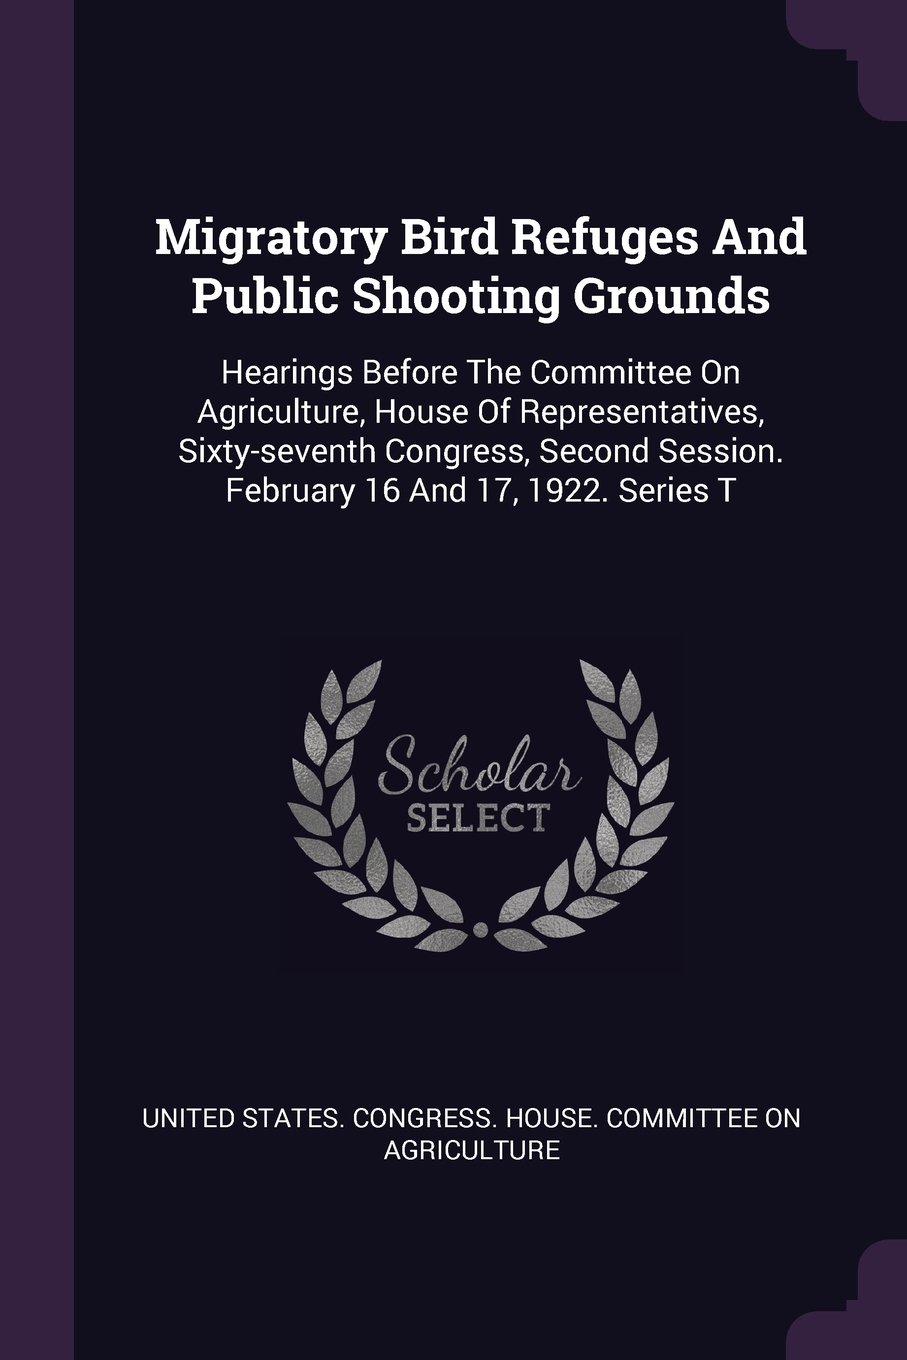 Download Migratory Bird Refuges And Public Shooting Grounds: Hearings Before The Committee On Agriculture, House Of Representatives, Sixty-seventh Congress, Second Session. February 16 And 17, 1922. Series T pdf epub